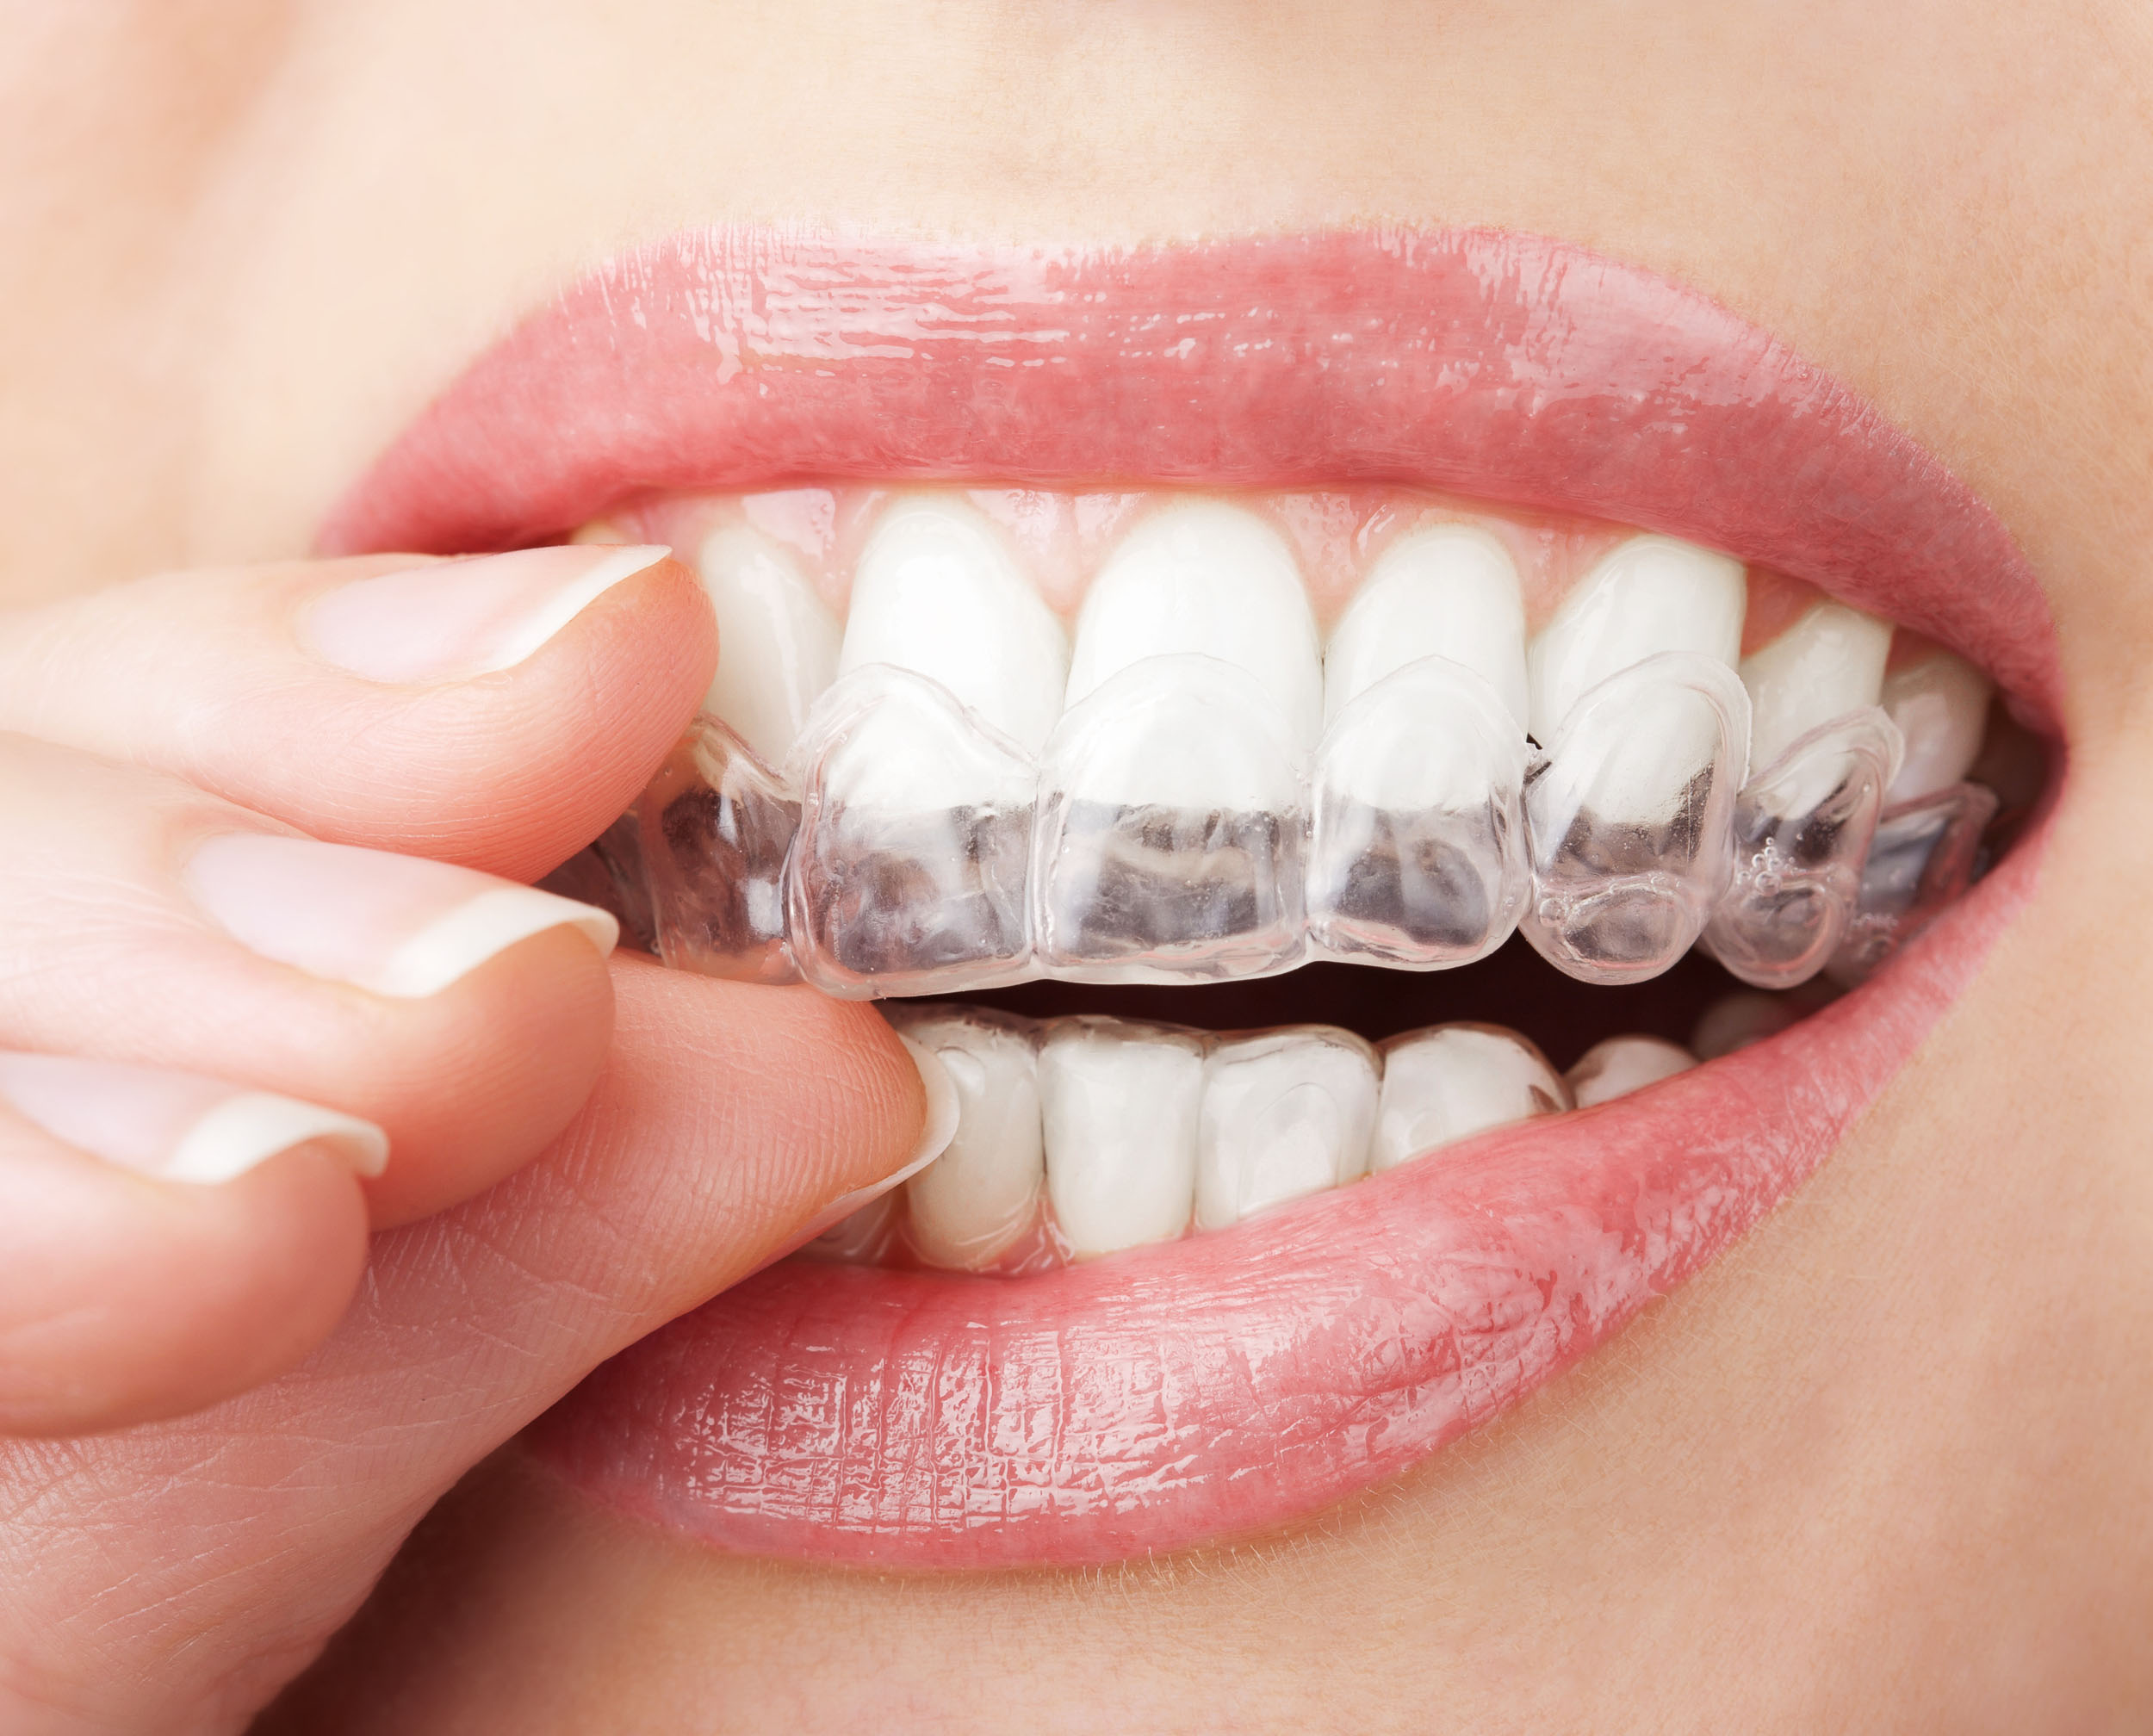 clear aligners invisalign nivellipso at smiletowin.com